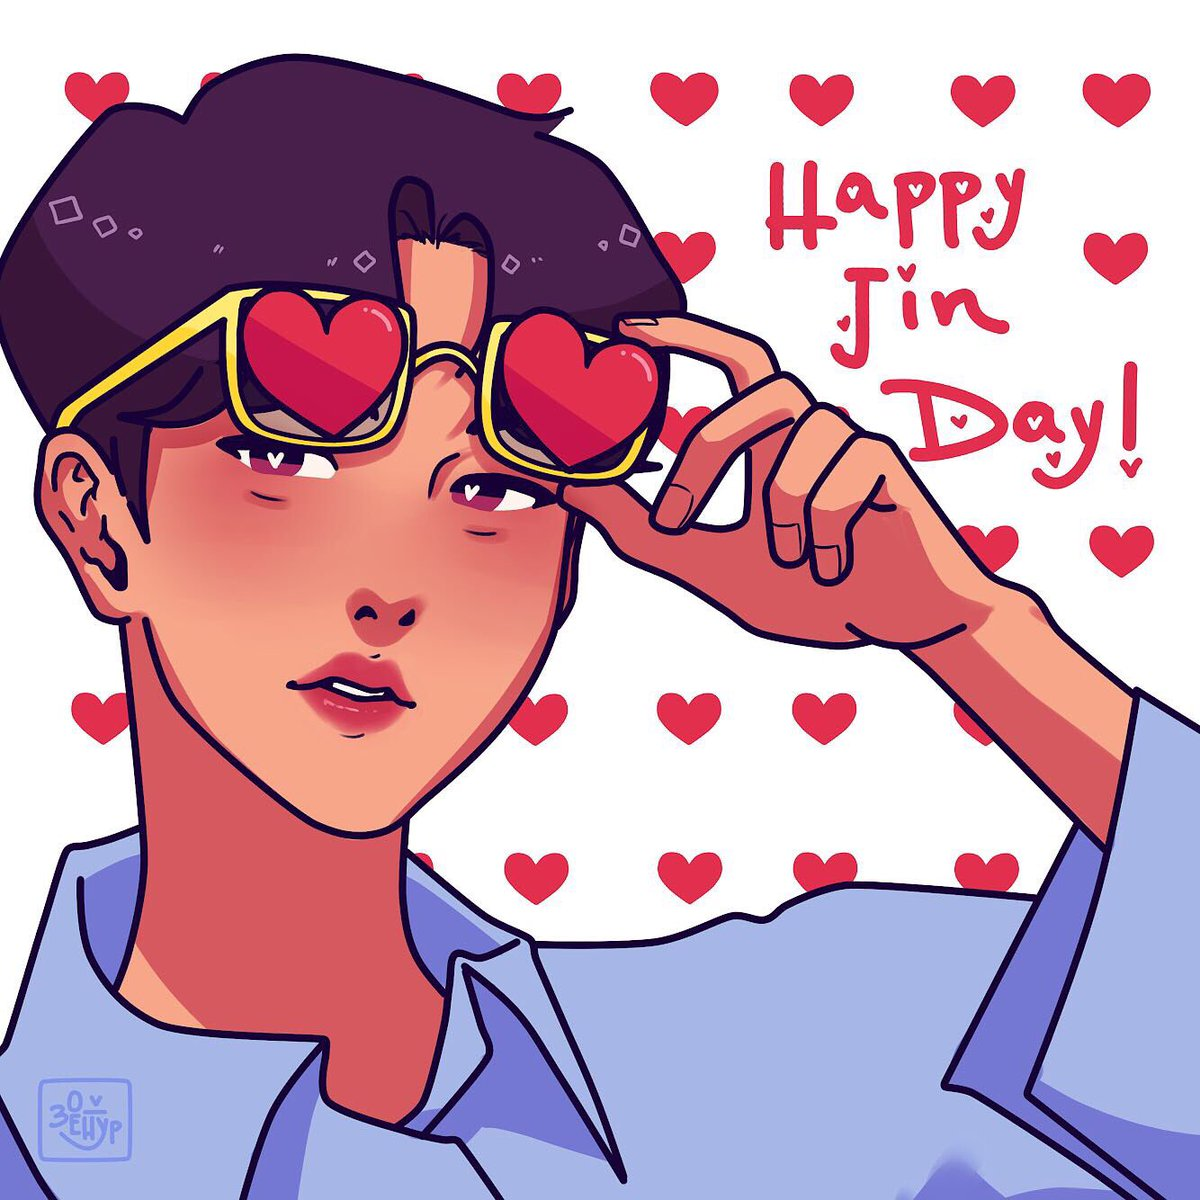 Happy birthday King ❤️ #HappyBirthdayJin #HAPPYJINDAY #TonightAndAlwaysWithJin #TonightYouareOurStar #WorldwideHandsomeJinDay #SeokjinDay #HeartsForJinDay #OurFlowerofDecember #RockJinDay #SilverVoiceJin